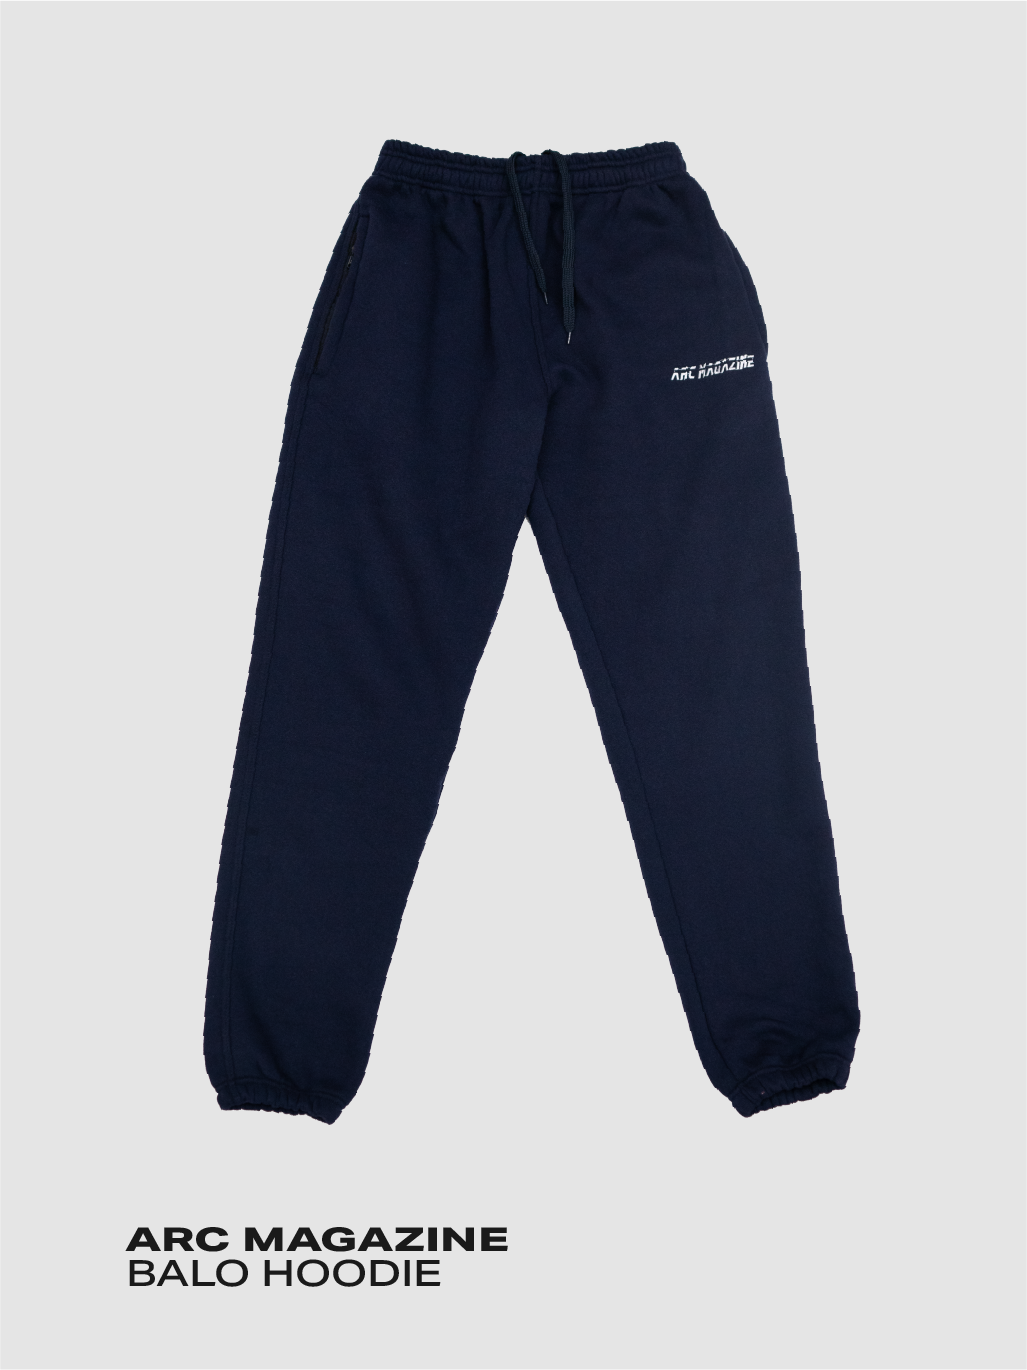 Balo sweatpants